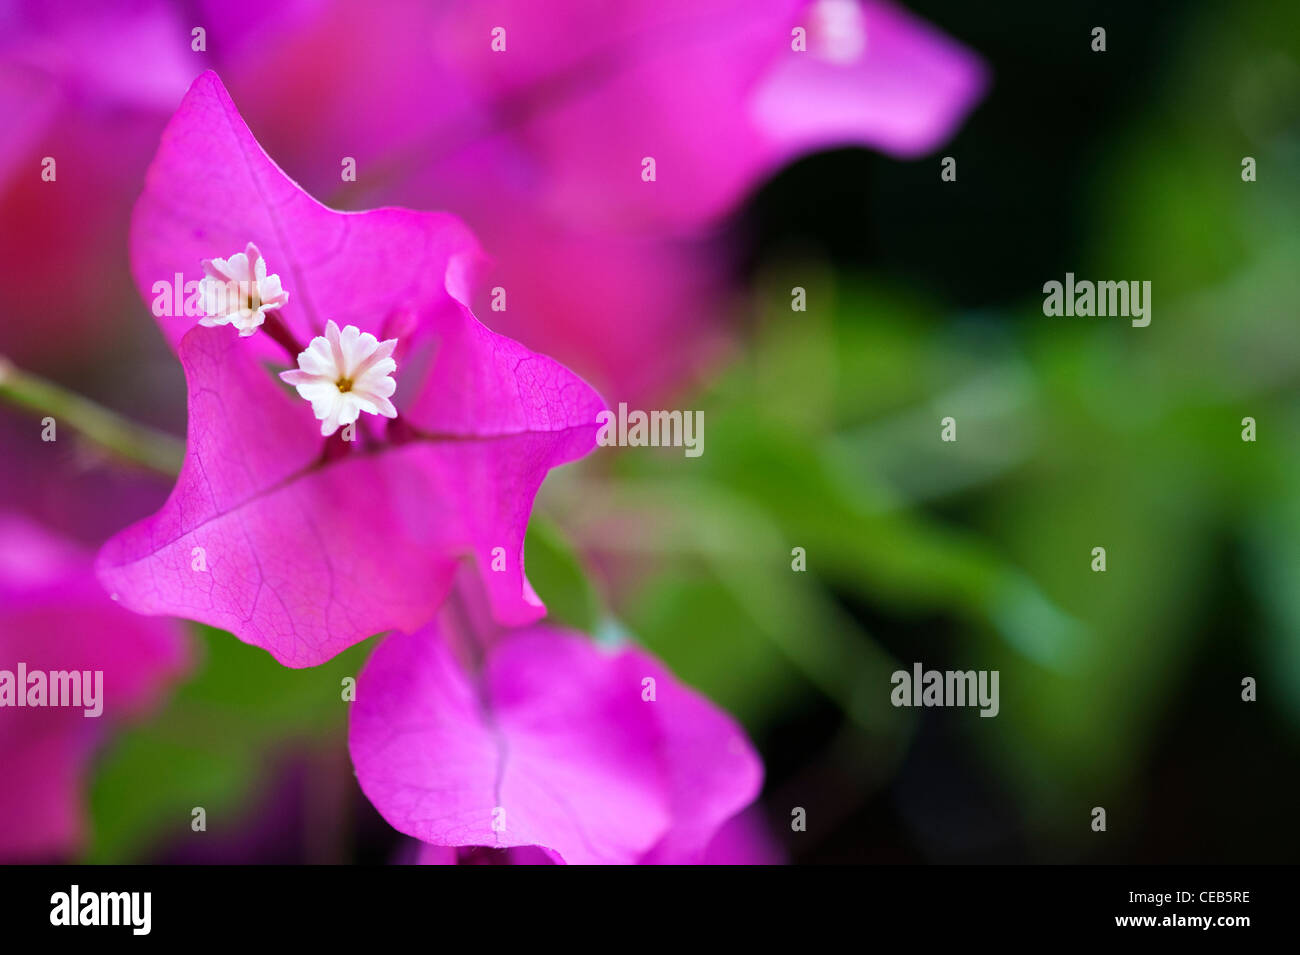 Bougainvillea spectabilis. Great bougainvillea Small white flowers and purple bracts. Andhra Pradesh, India - Stock Image